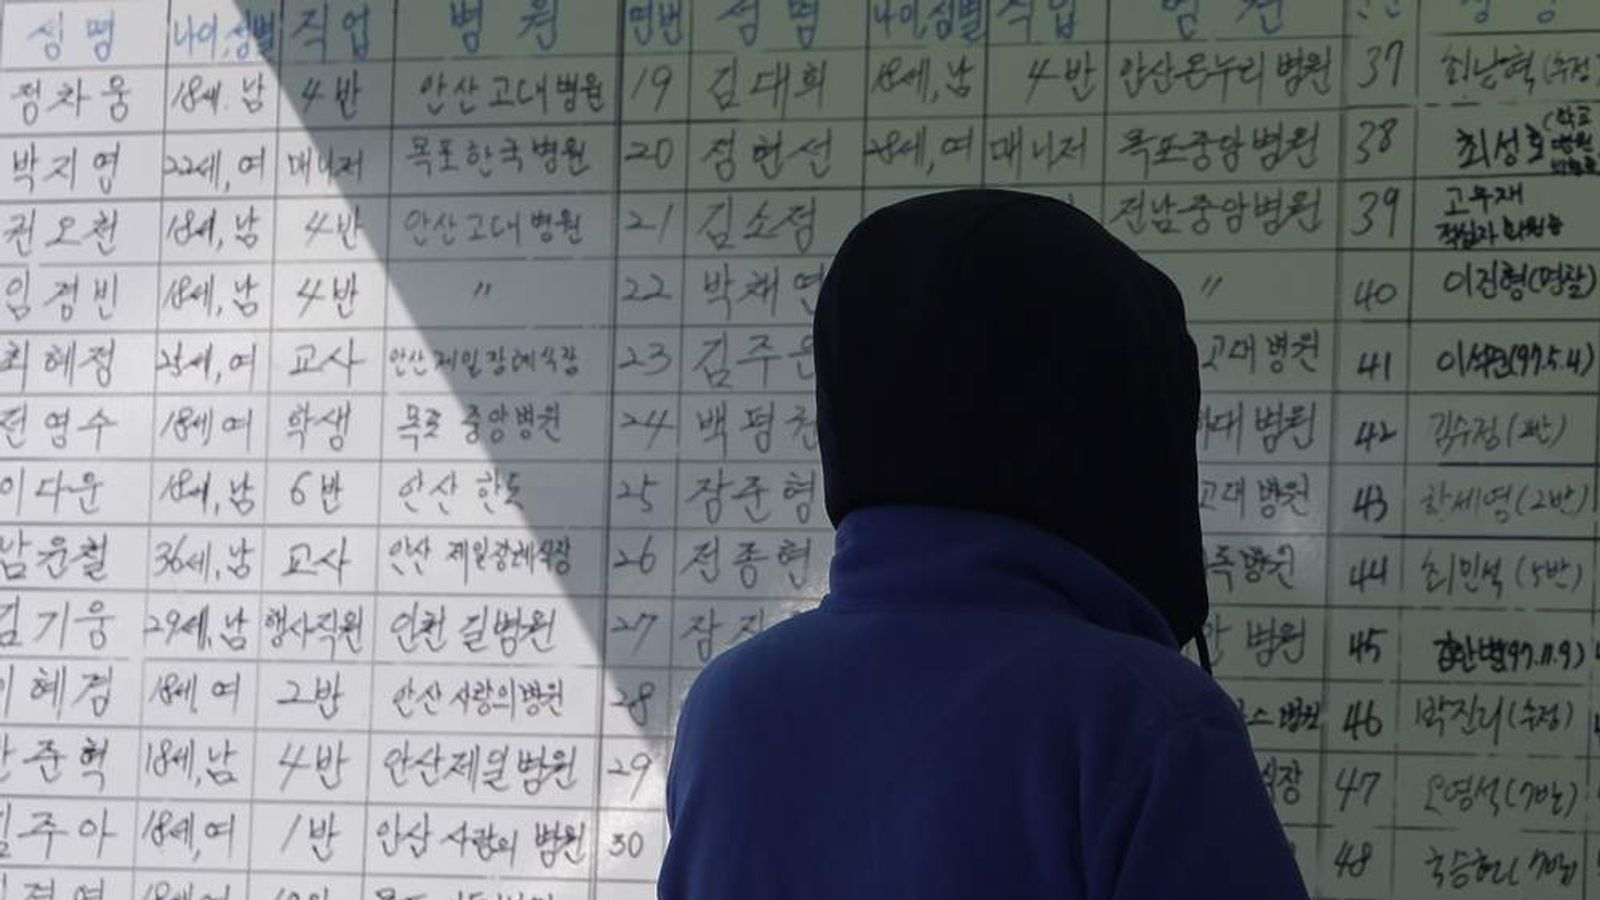 A relative checks lists of dead of the sunken ferry at Jindo port, South Korea.